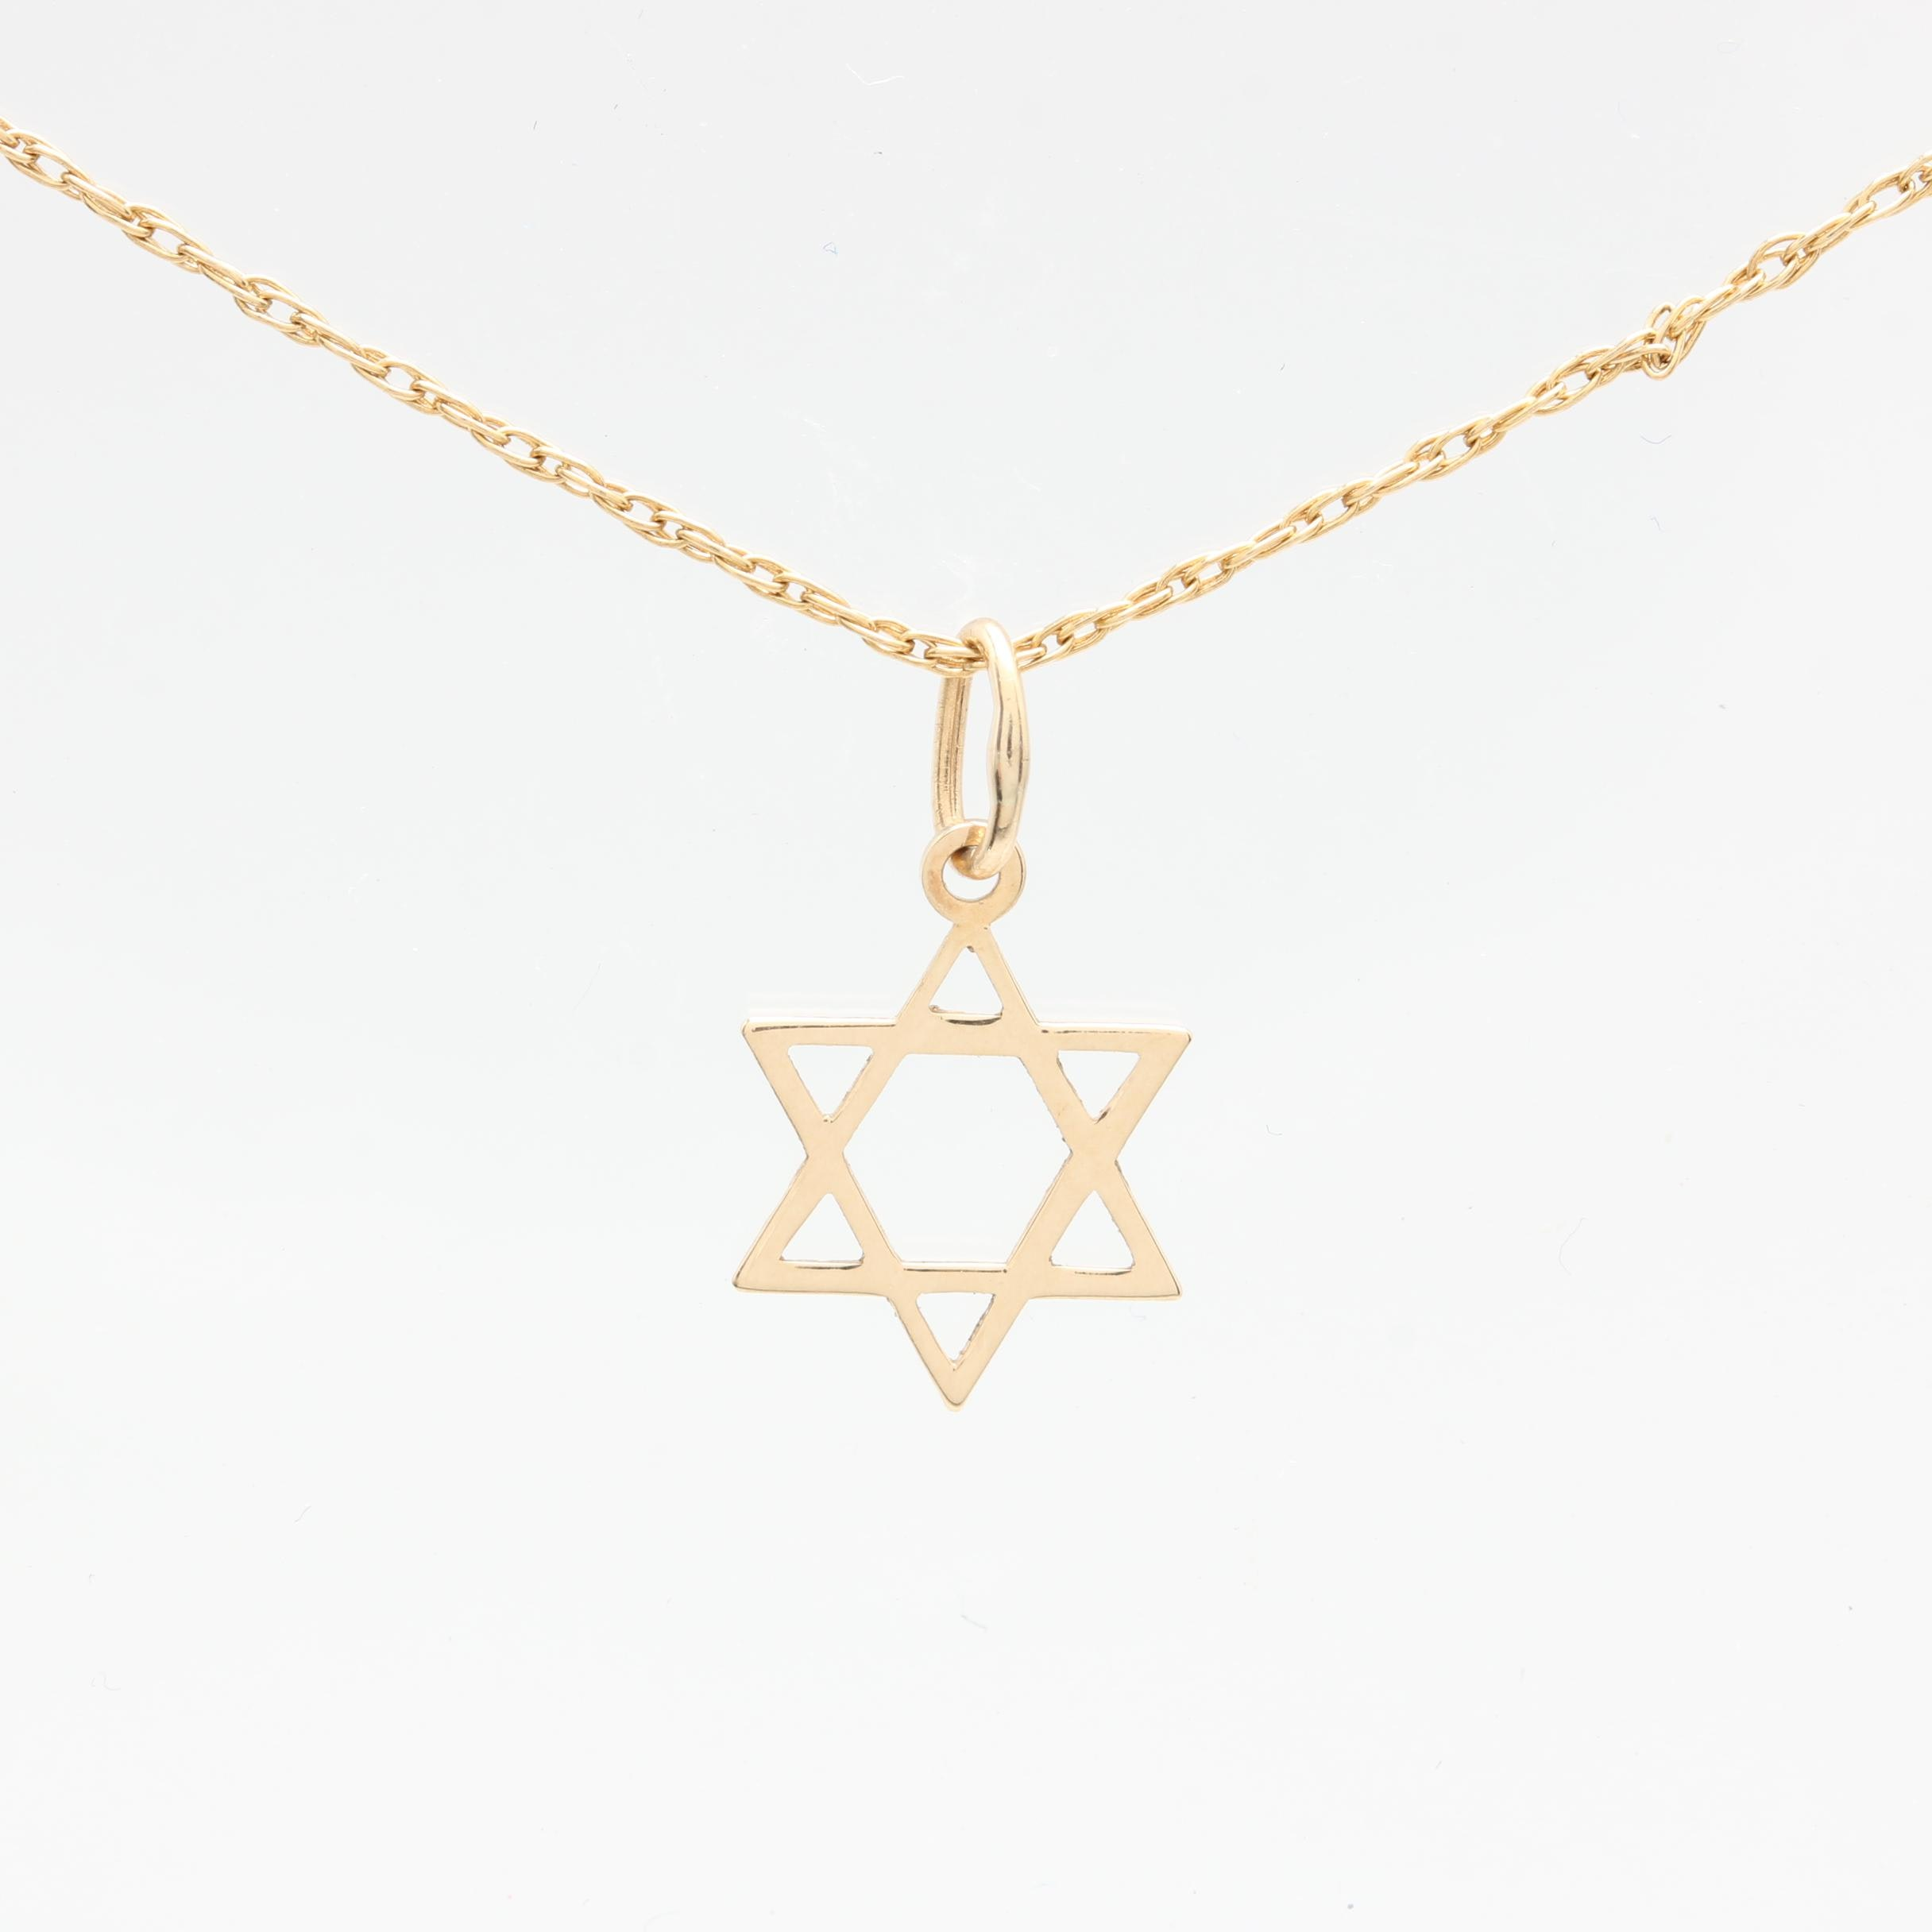 14K Yellow Gold Star of David Necklace